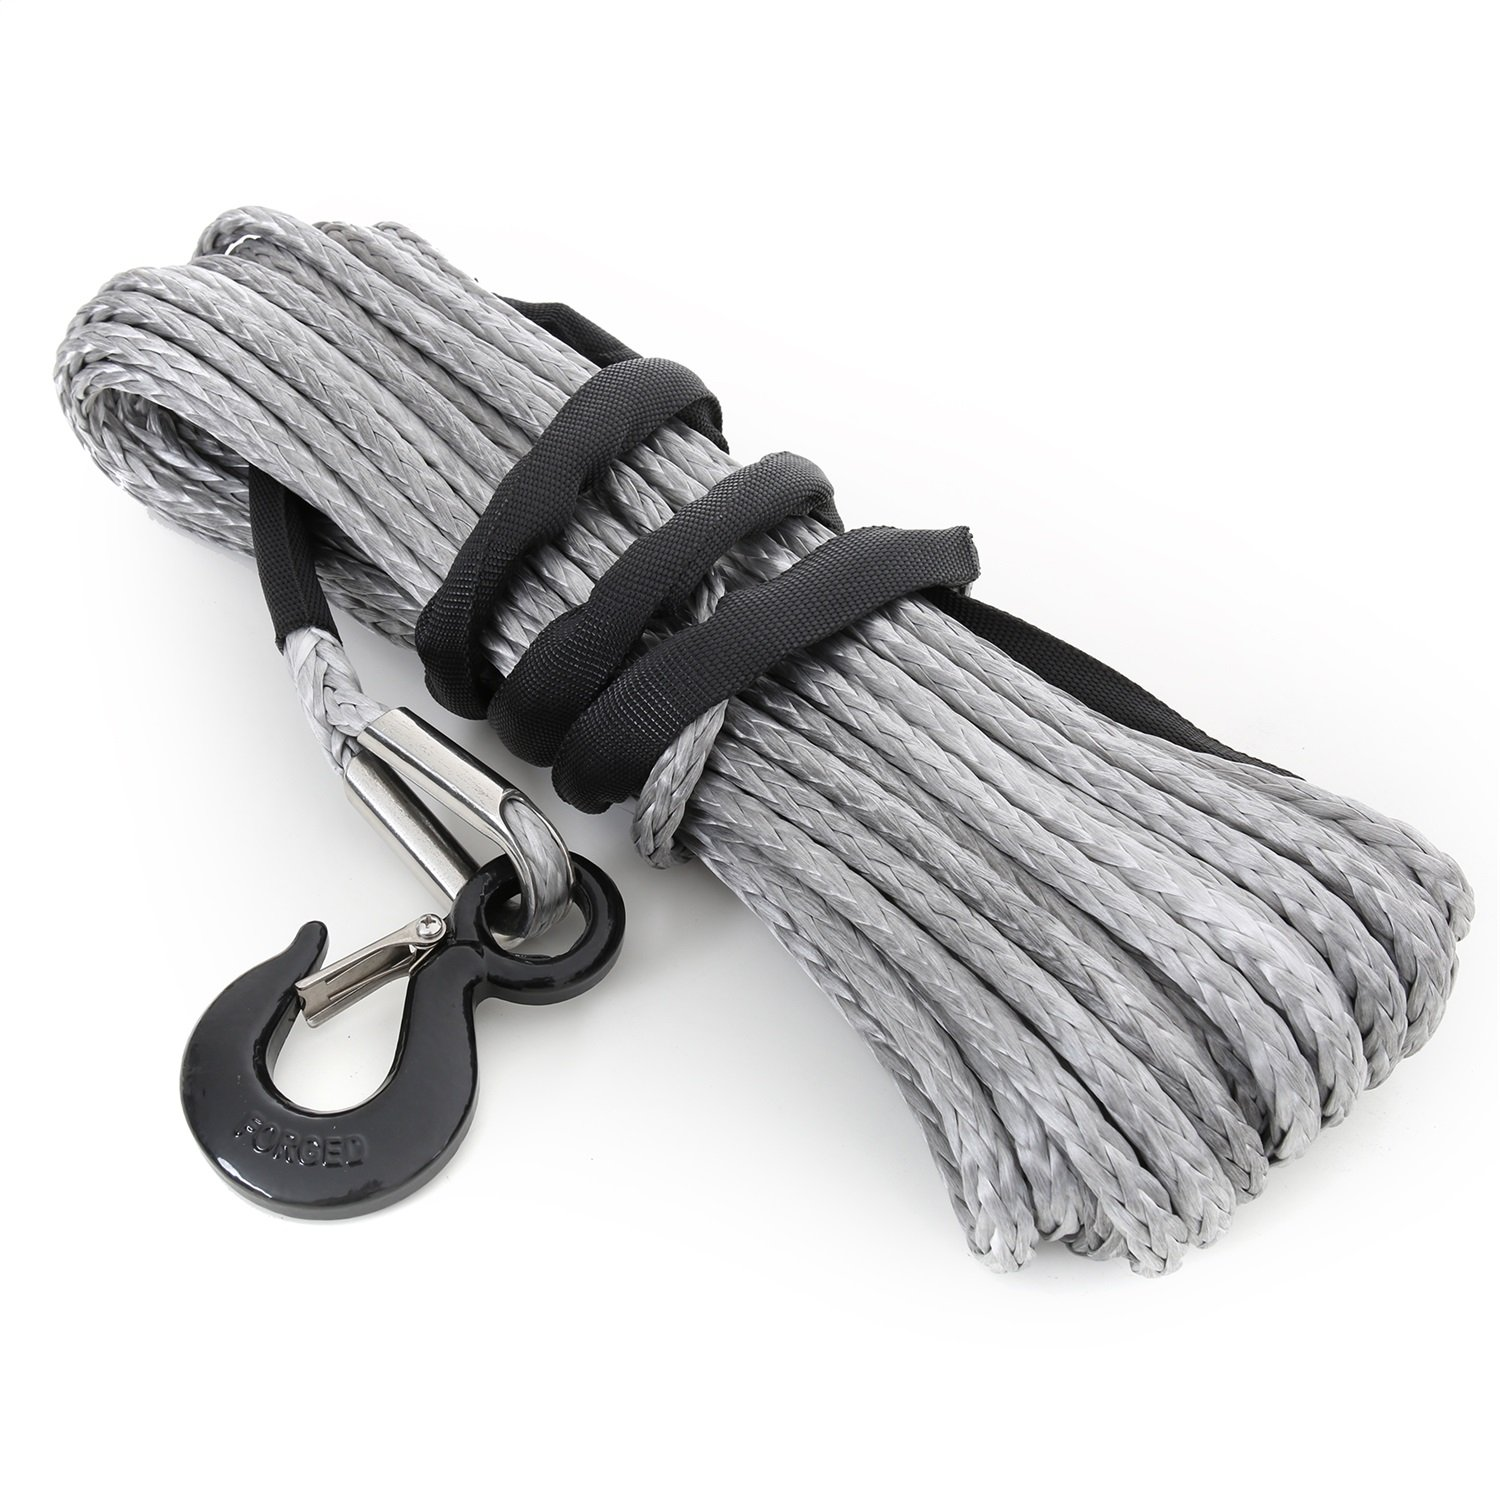 Smittybilt 97710 XRC Universal Synthetic Rope by Smittybilt